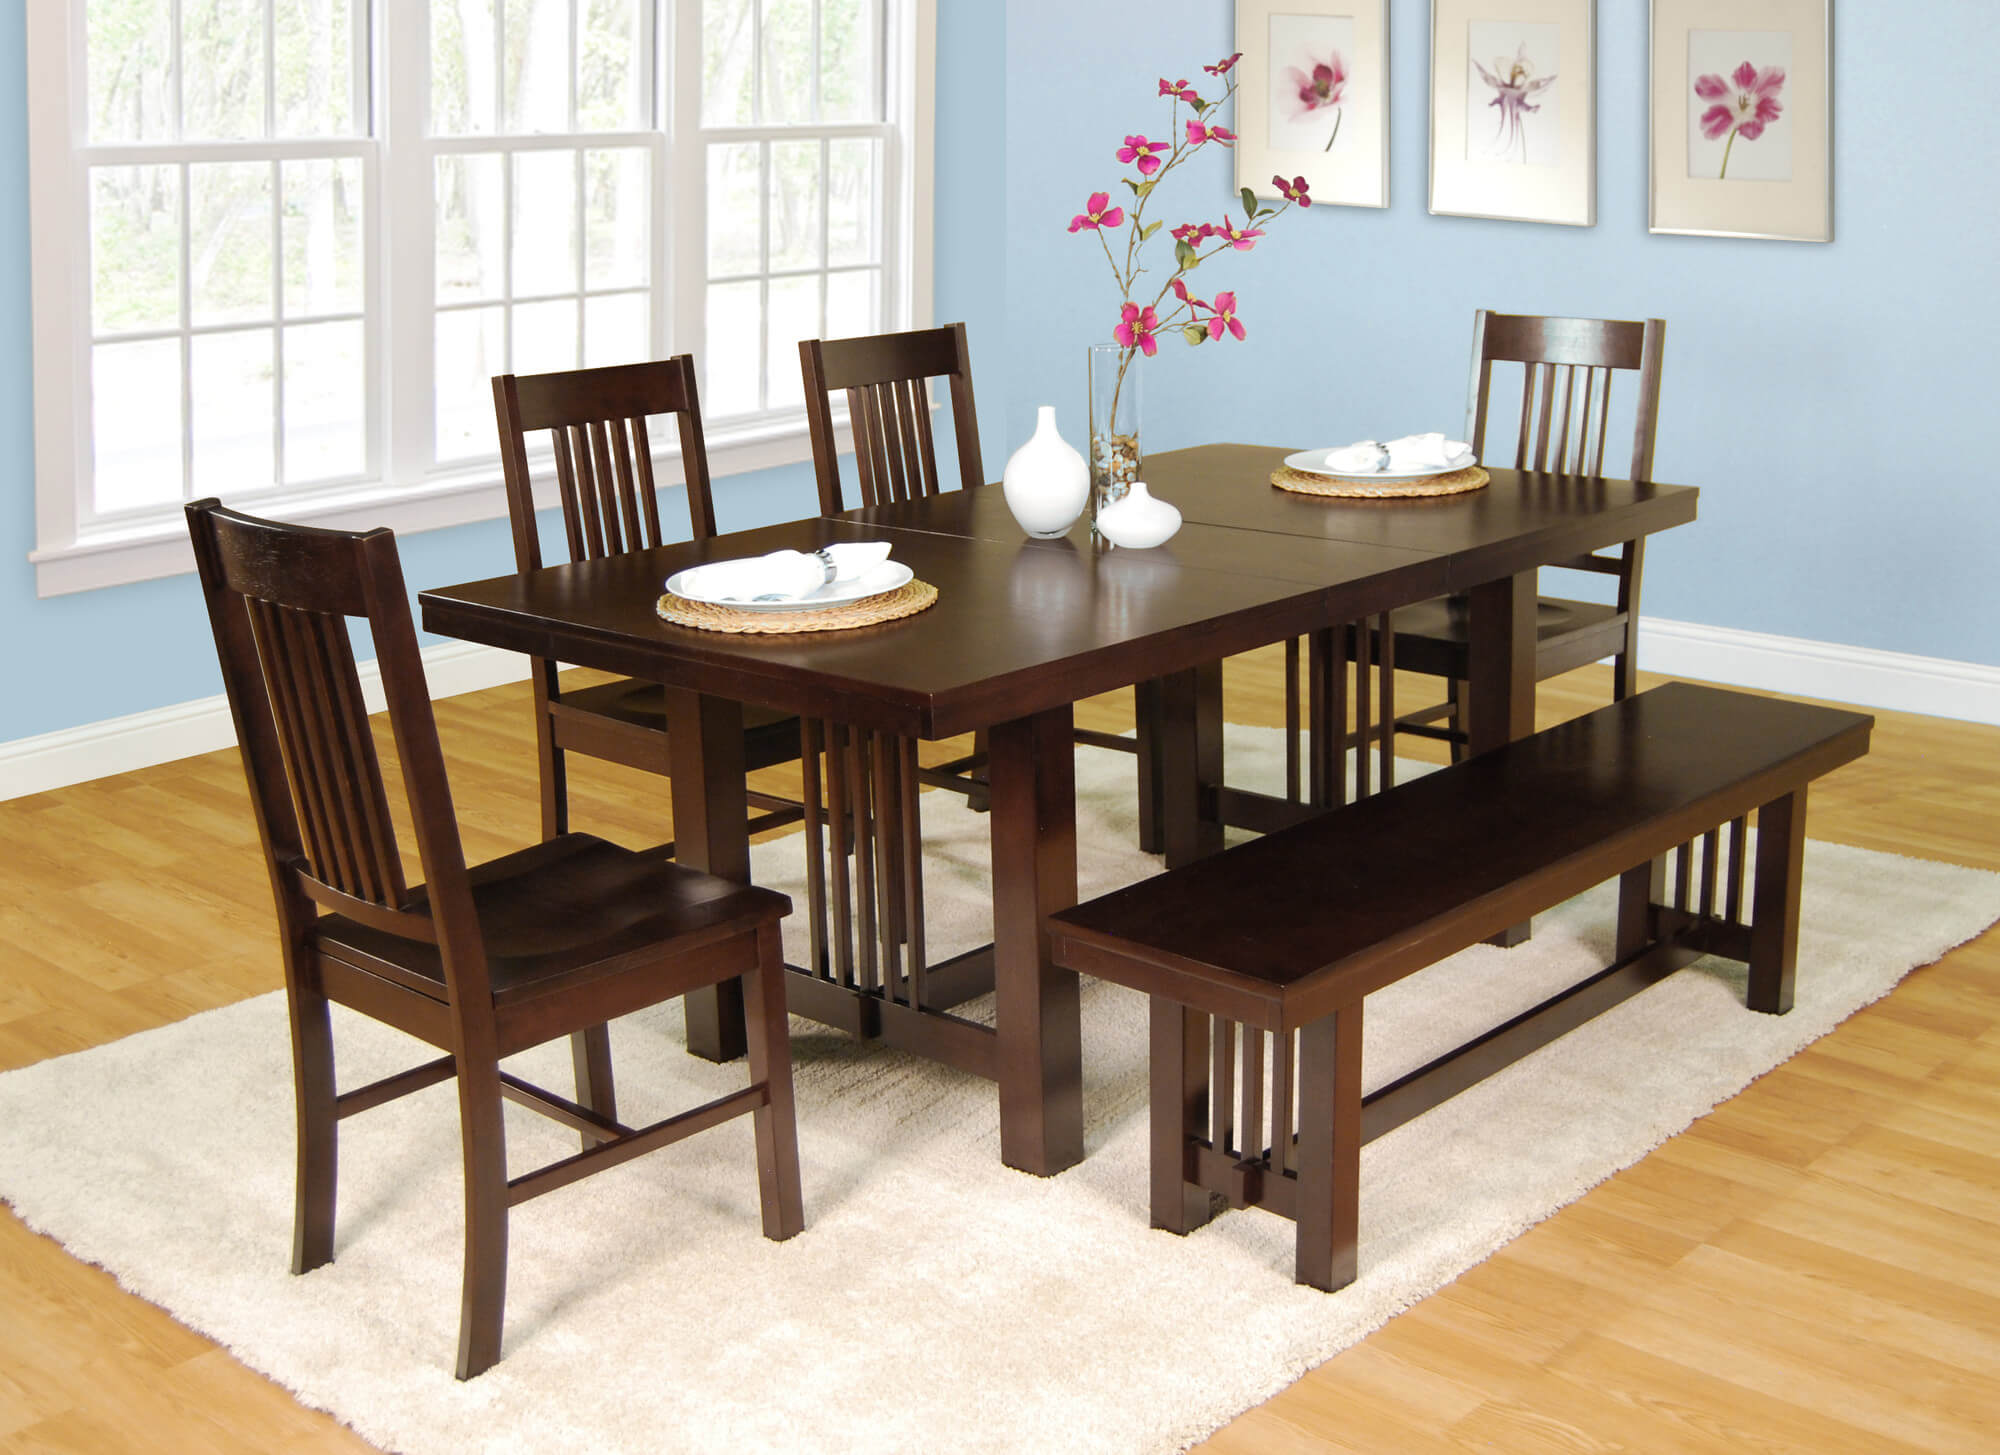 10 Seat Dining Table Set 26 Dining Room Sets Big And Small With Bench Seating 2019